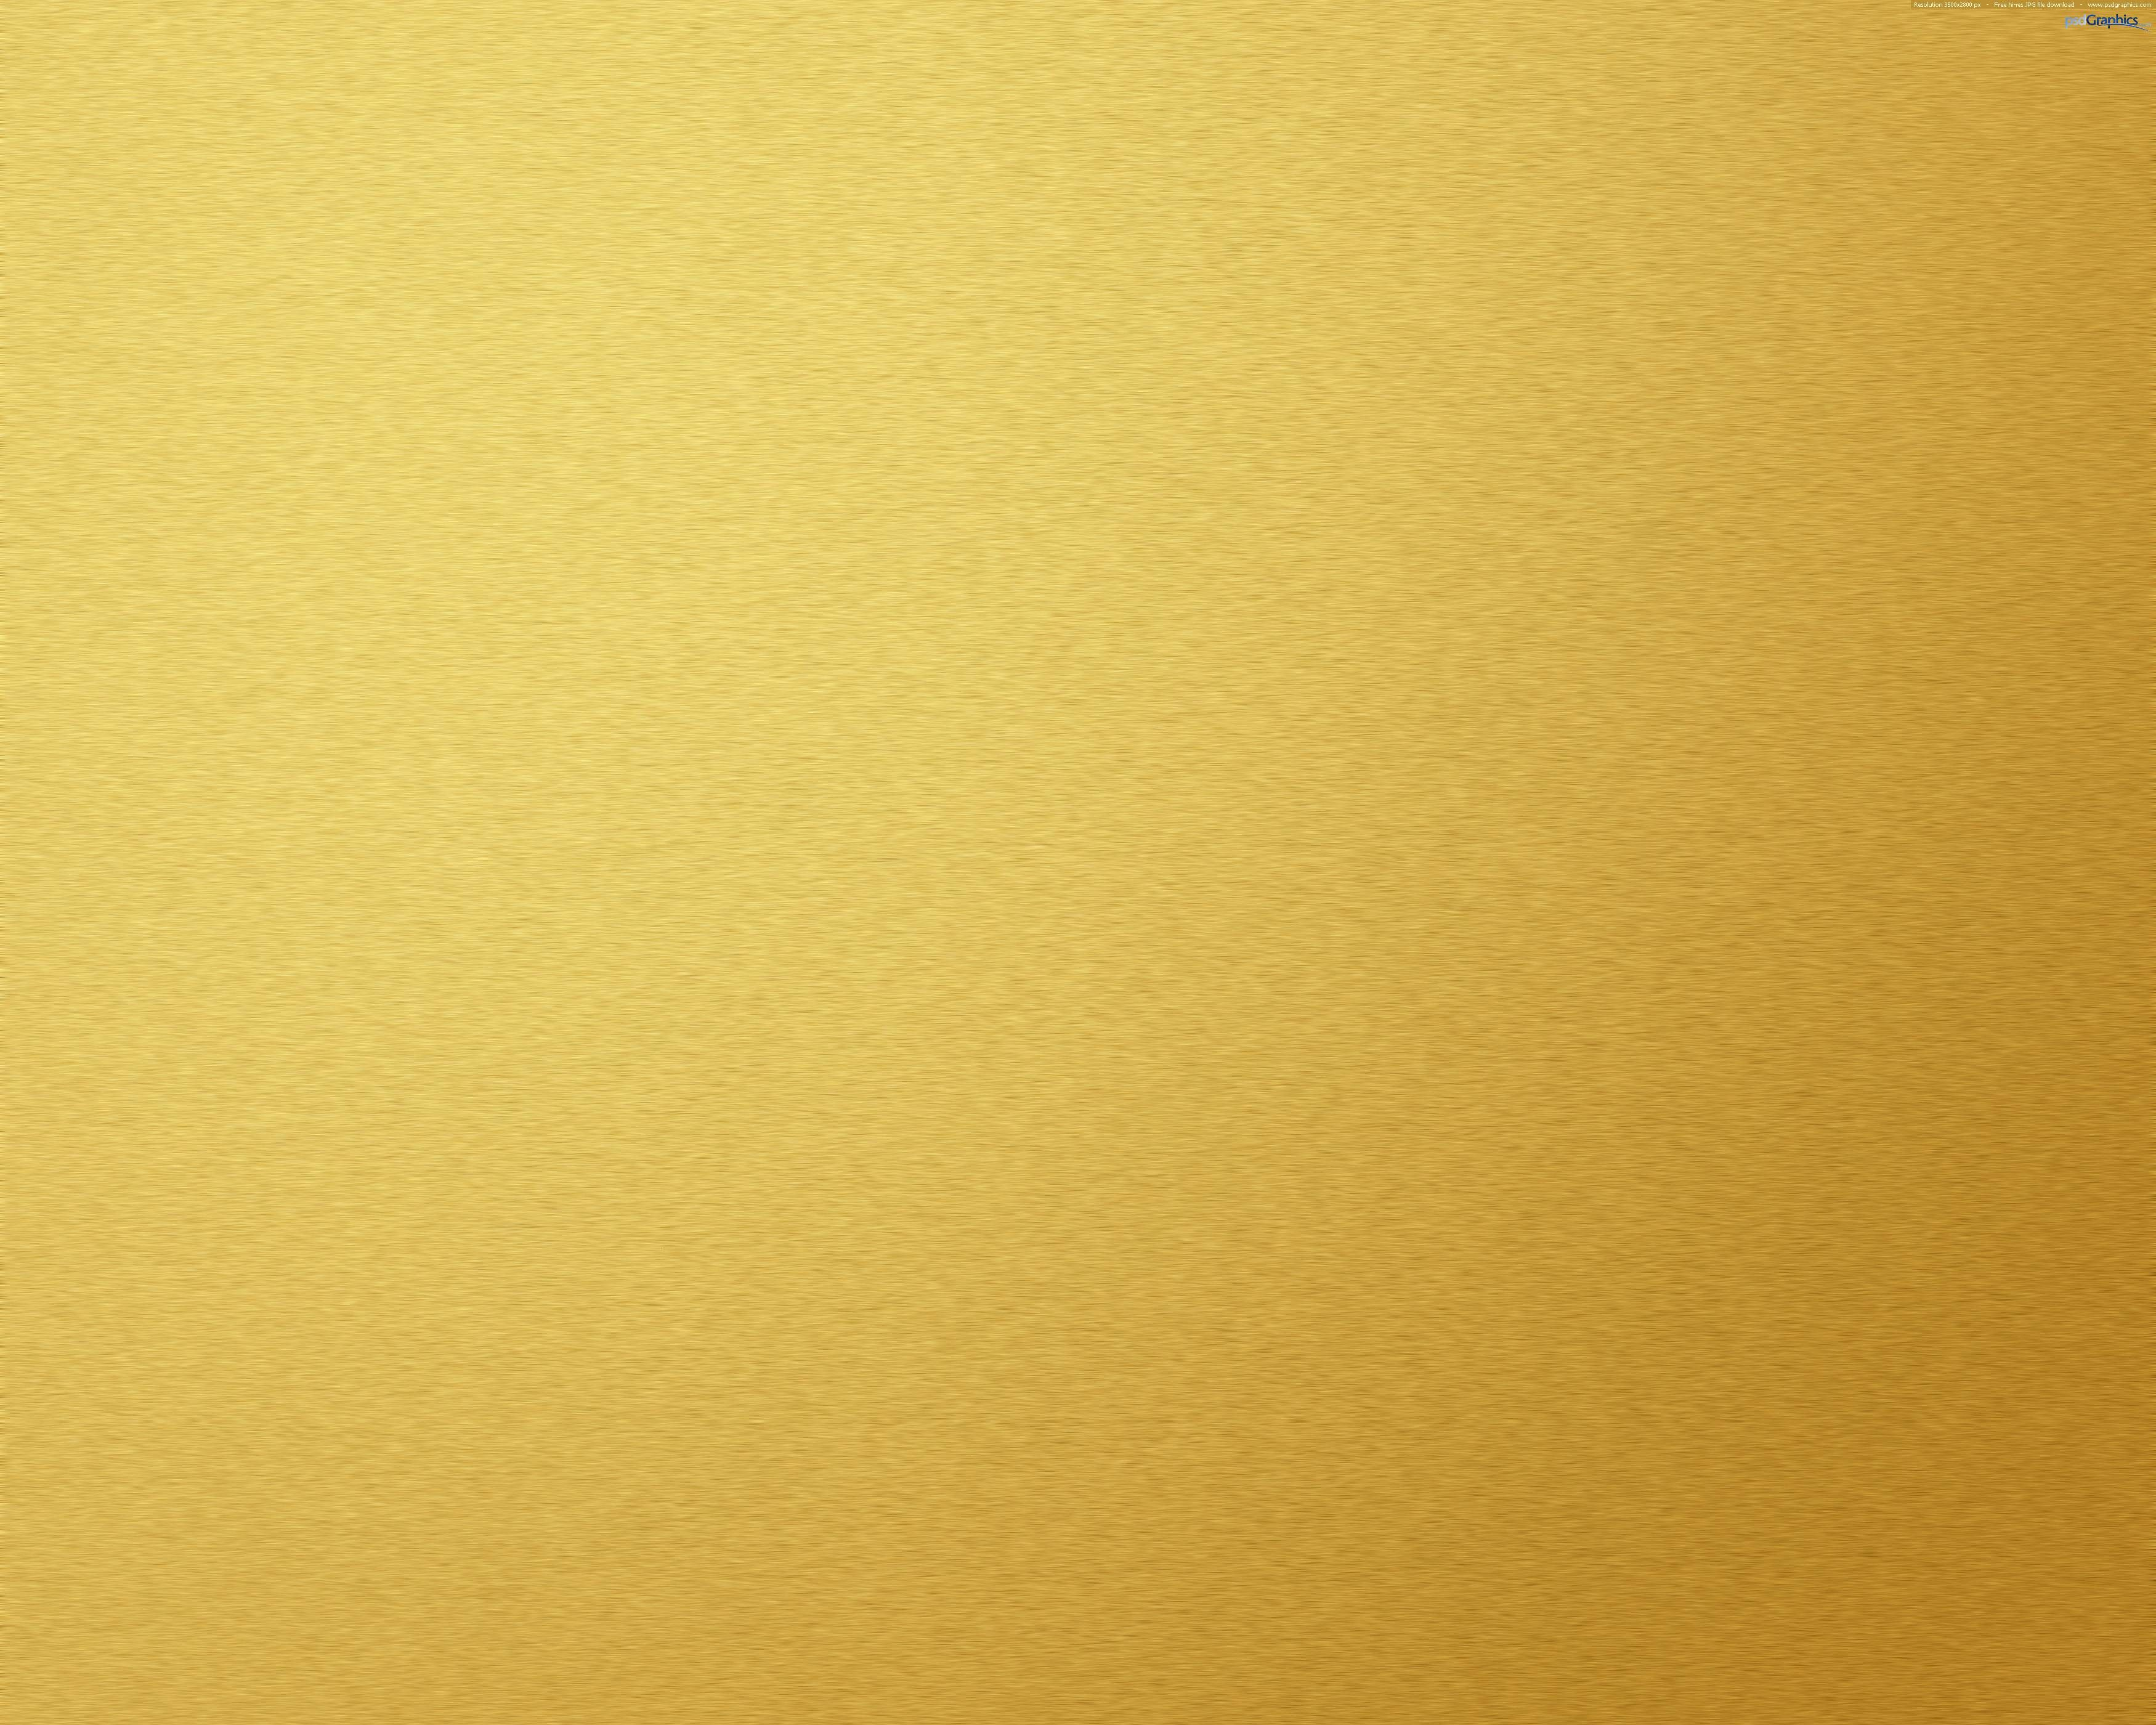 gold backgrounds wallpaper cave golden backgrounds in